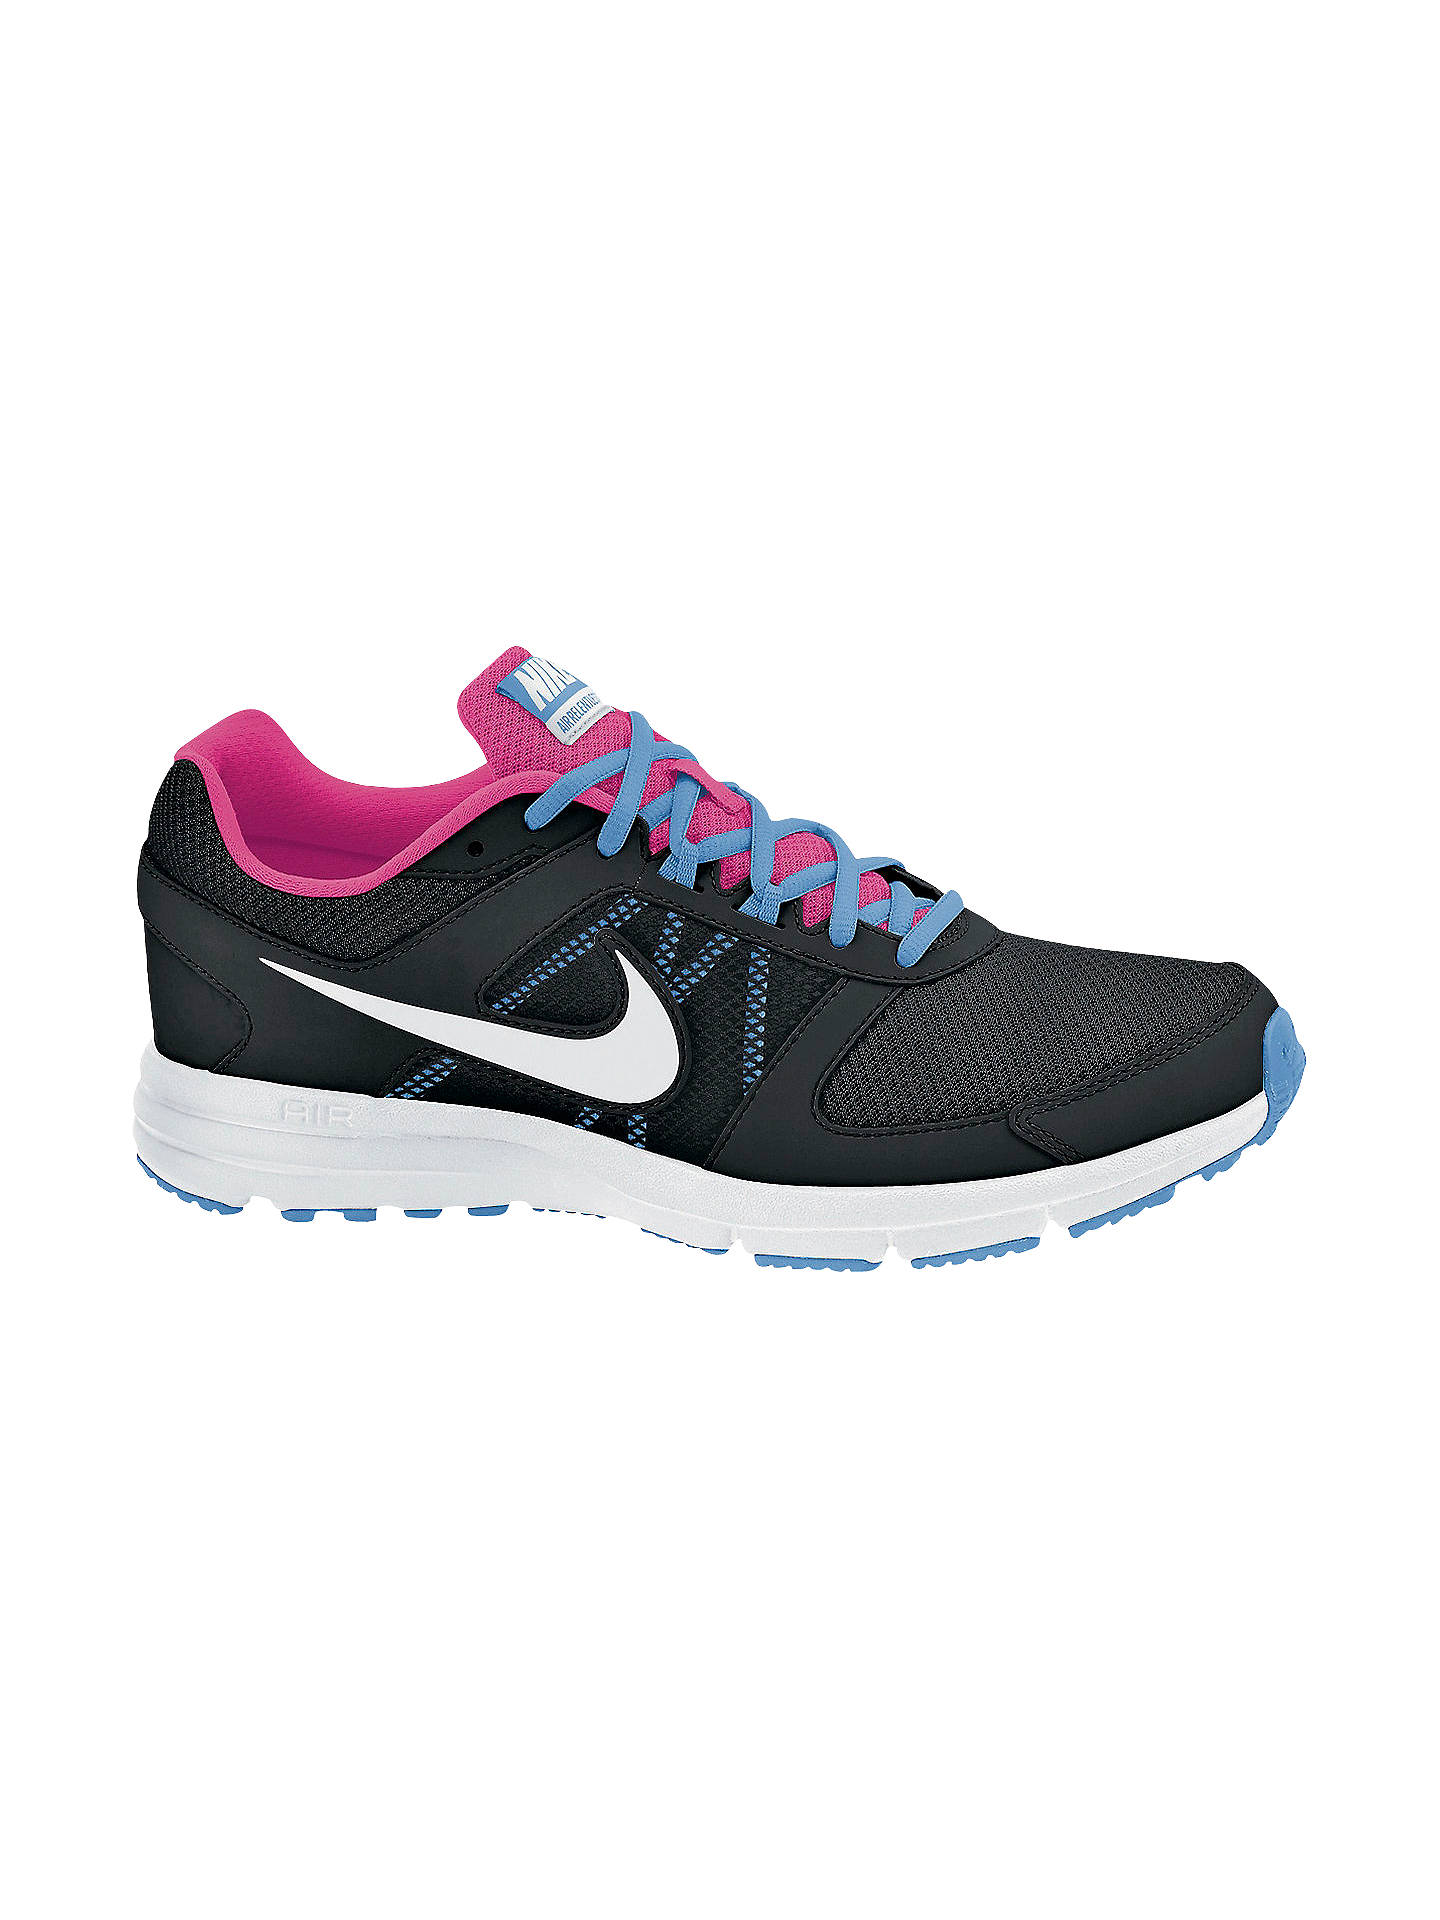 the latest fd842 5f0c5 Nike Women's Air Relentless 3 Running Shoes, Black/White at ...